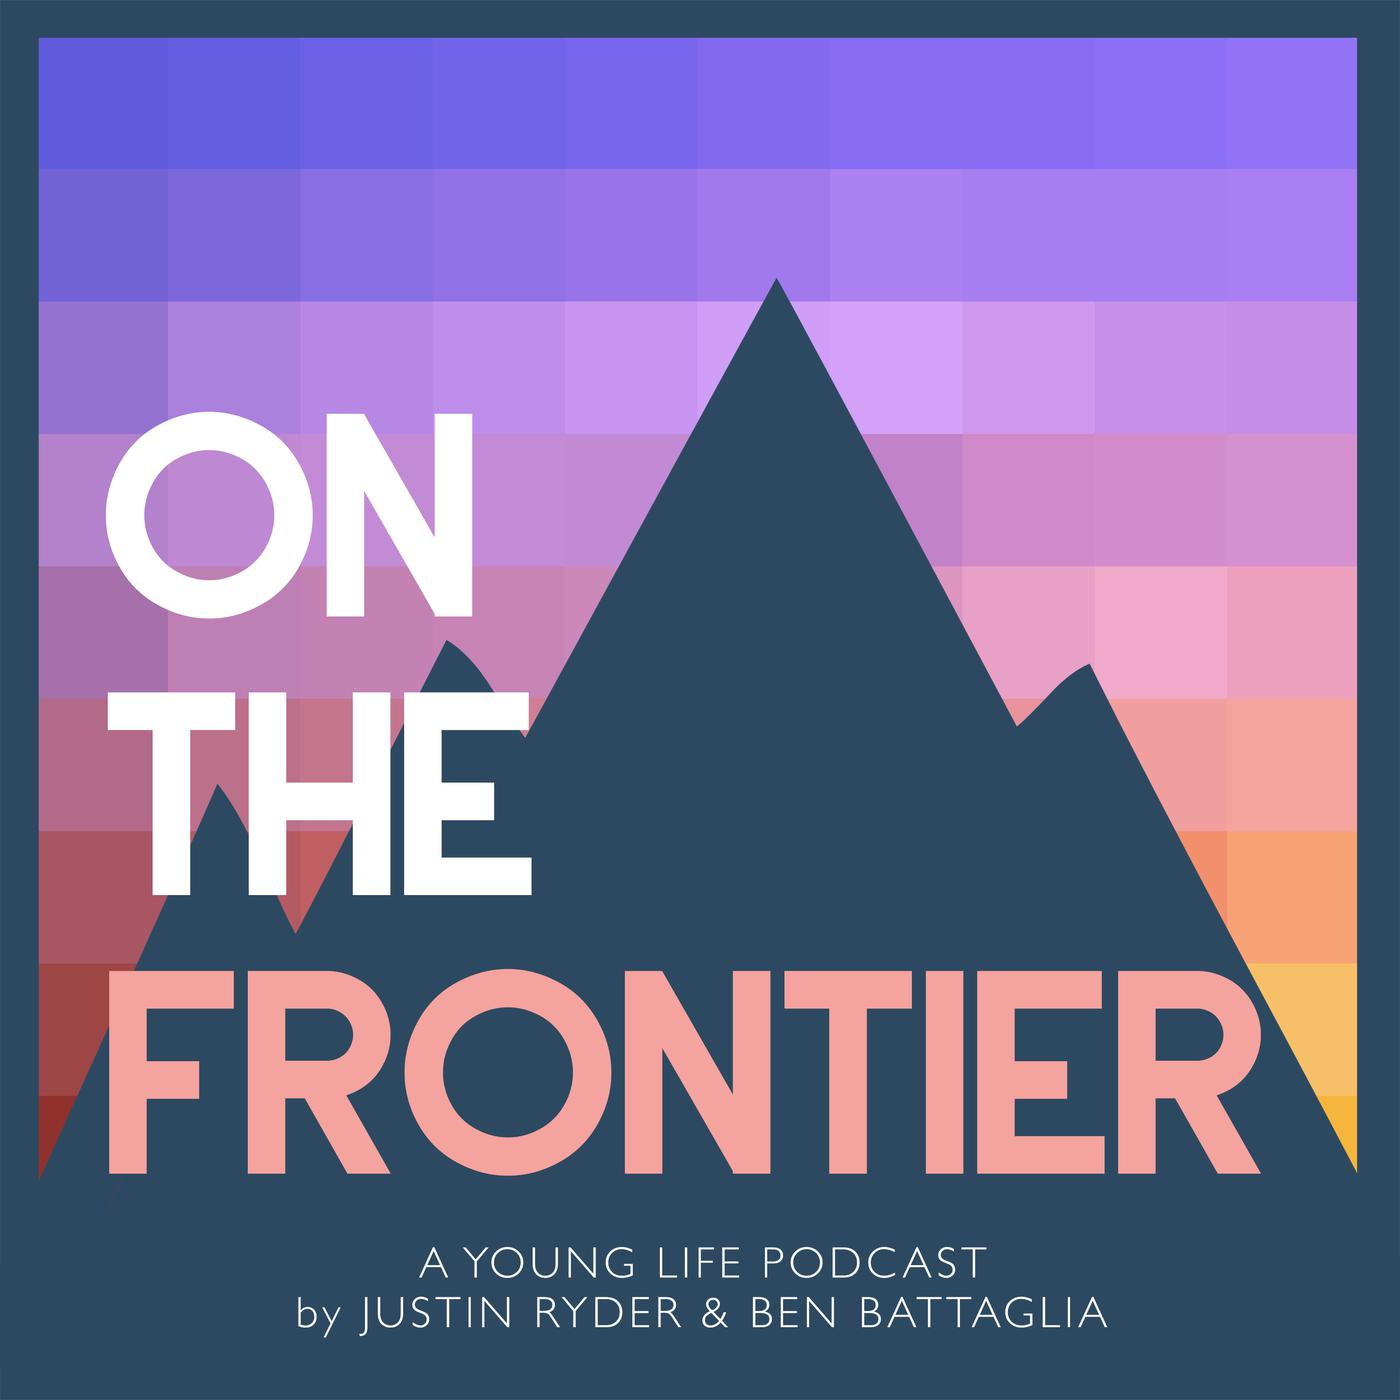 On The Frontier: A Young Life Podcast - Justin Ryder and Ben